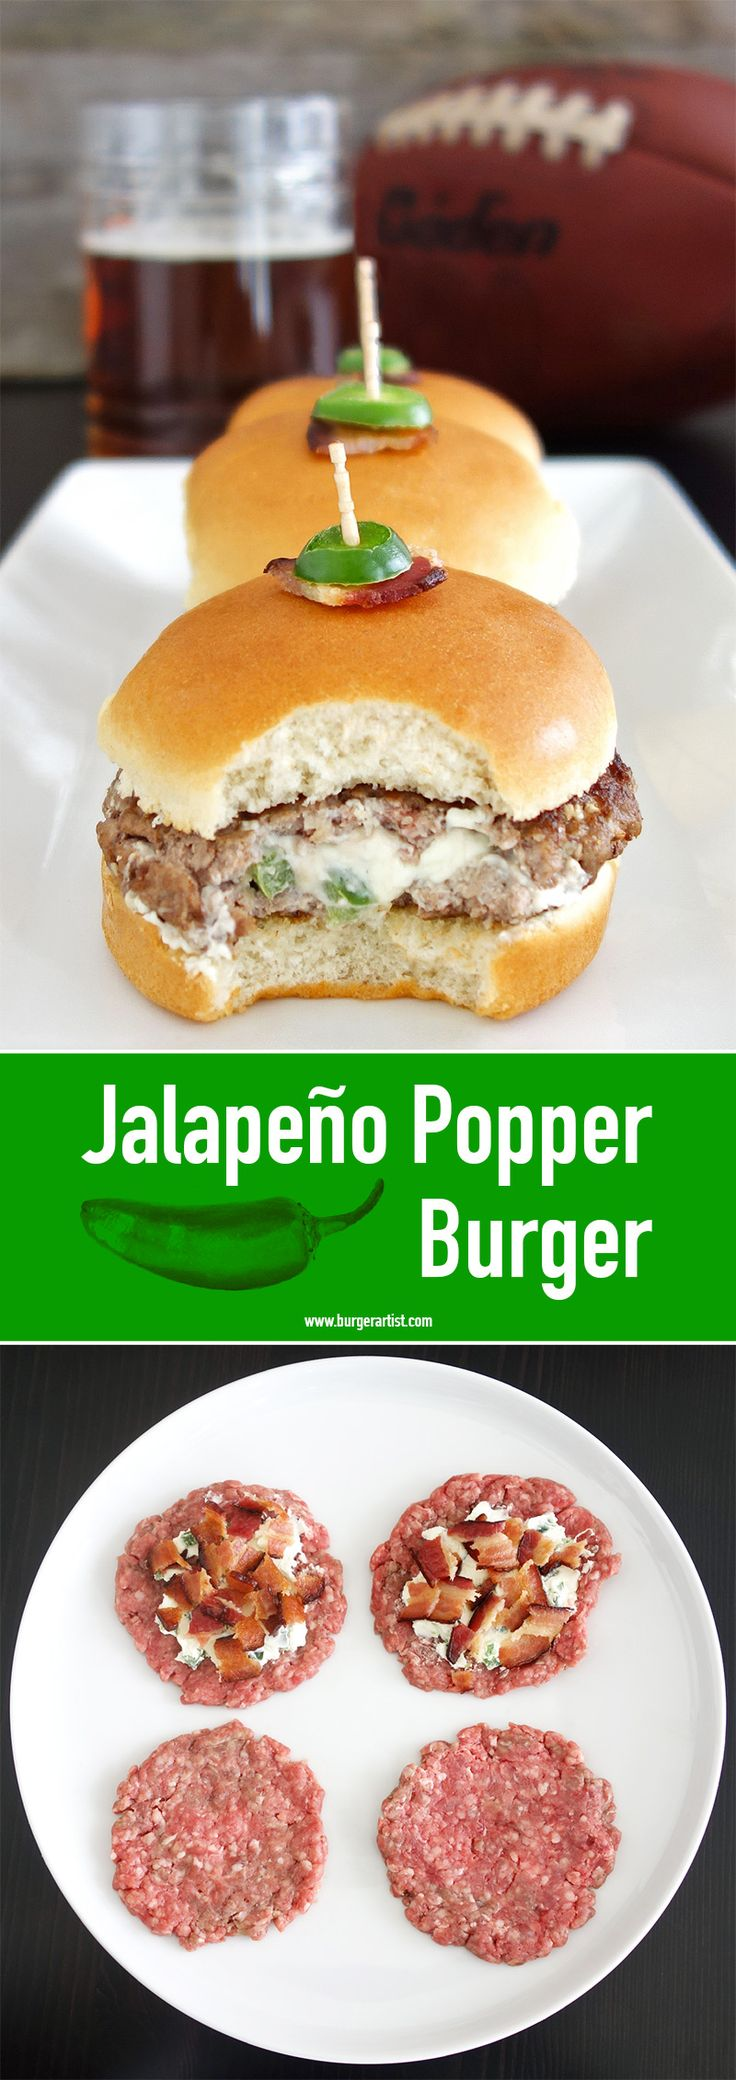 100+ Stuffed Burger Recipes on Pinterest | Stuffed hamburger recipes ...